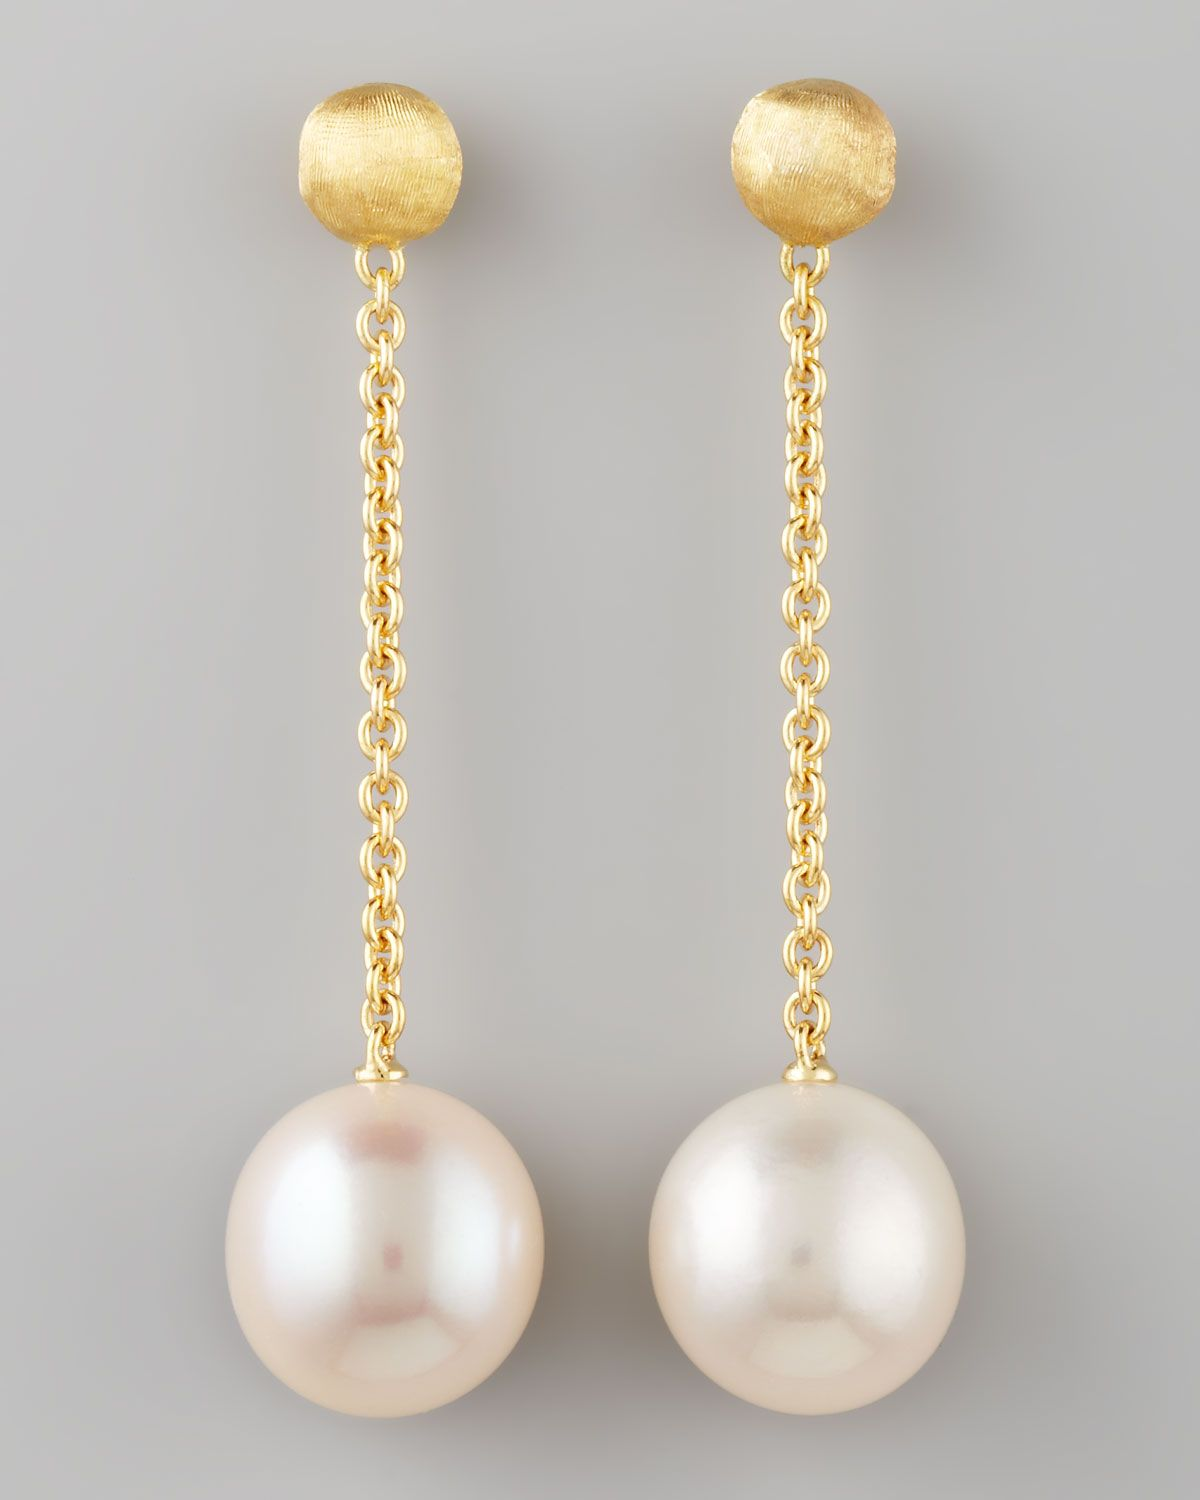 single shop earrings and pearl img arts artisans